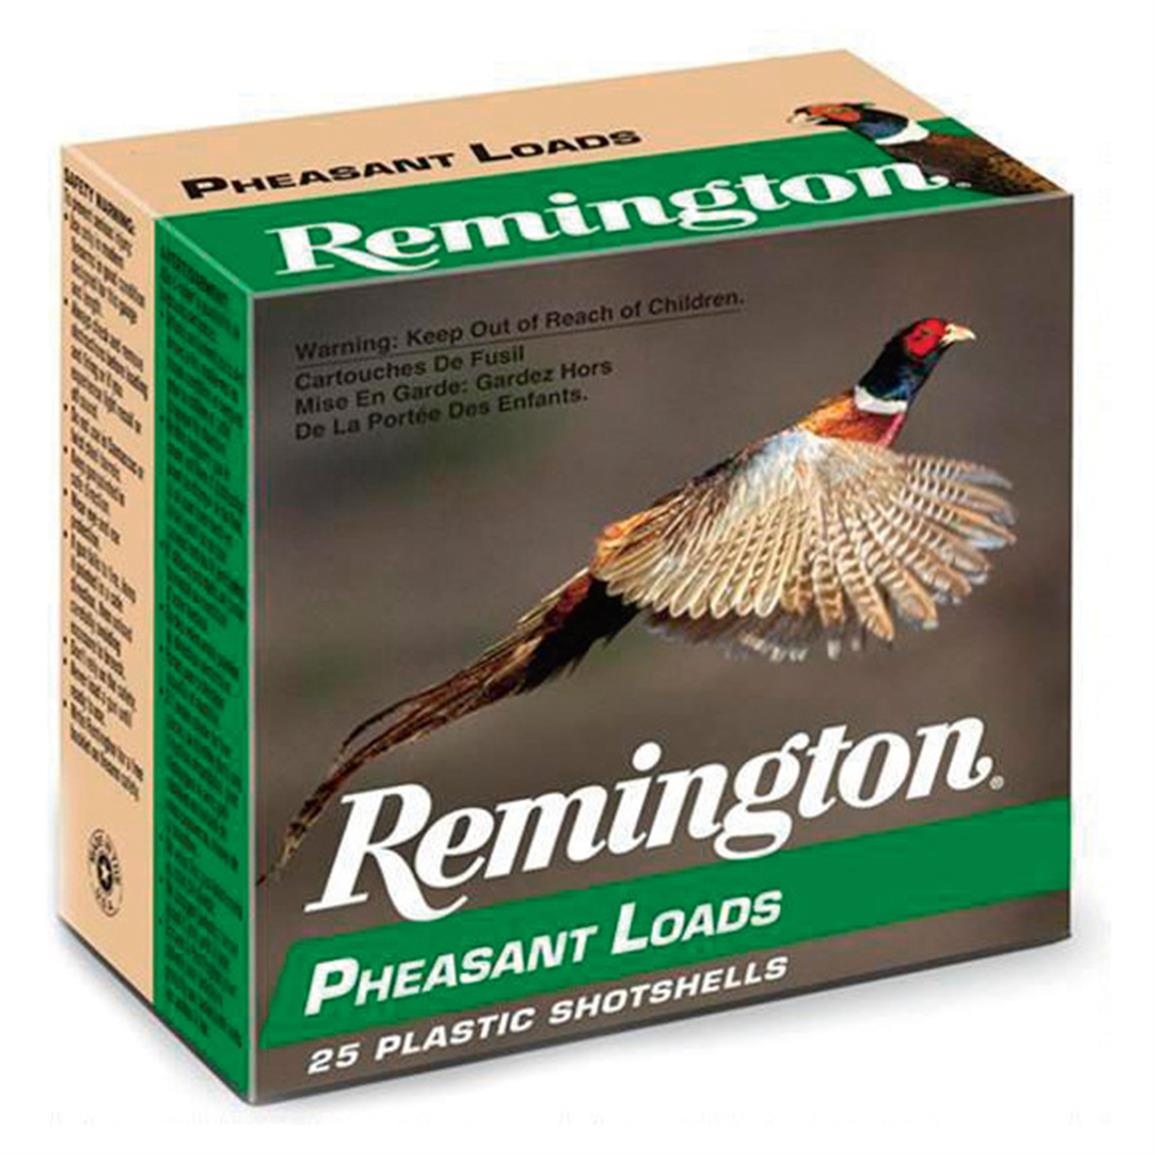 "Remington Pheasant Loads, 2 3/4"" 16 Gauge, 1 1/8 ozs., 25 Rounds"